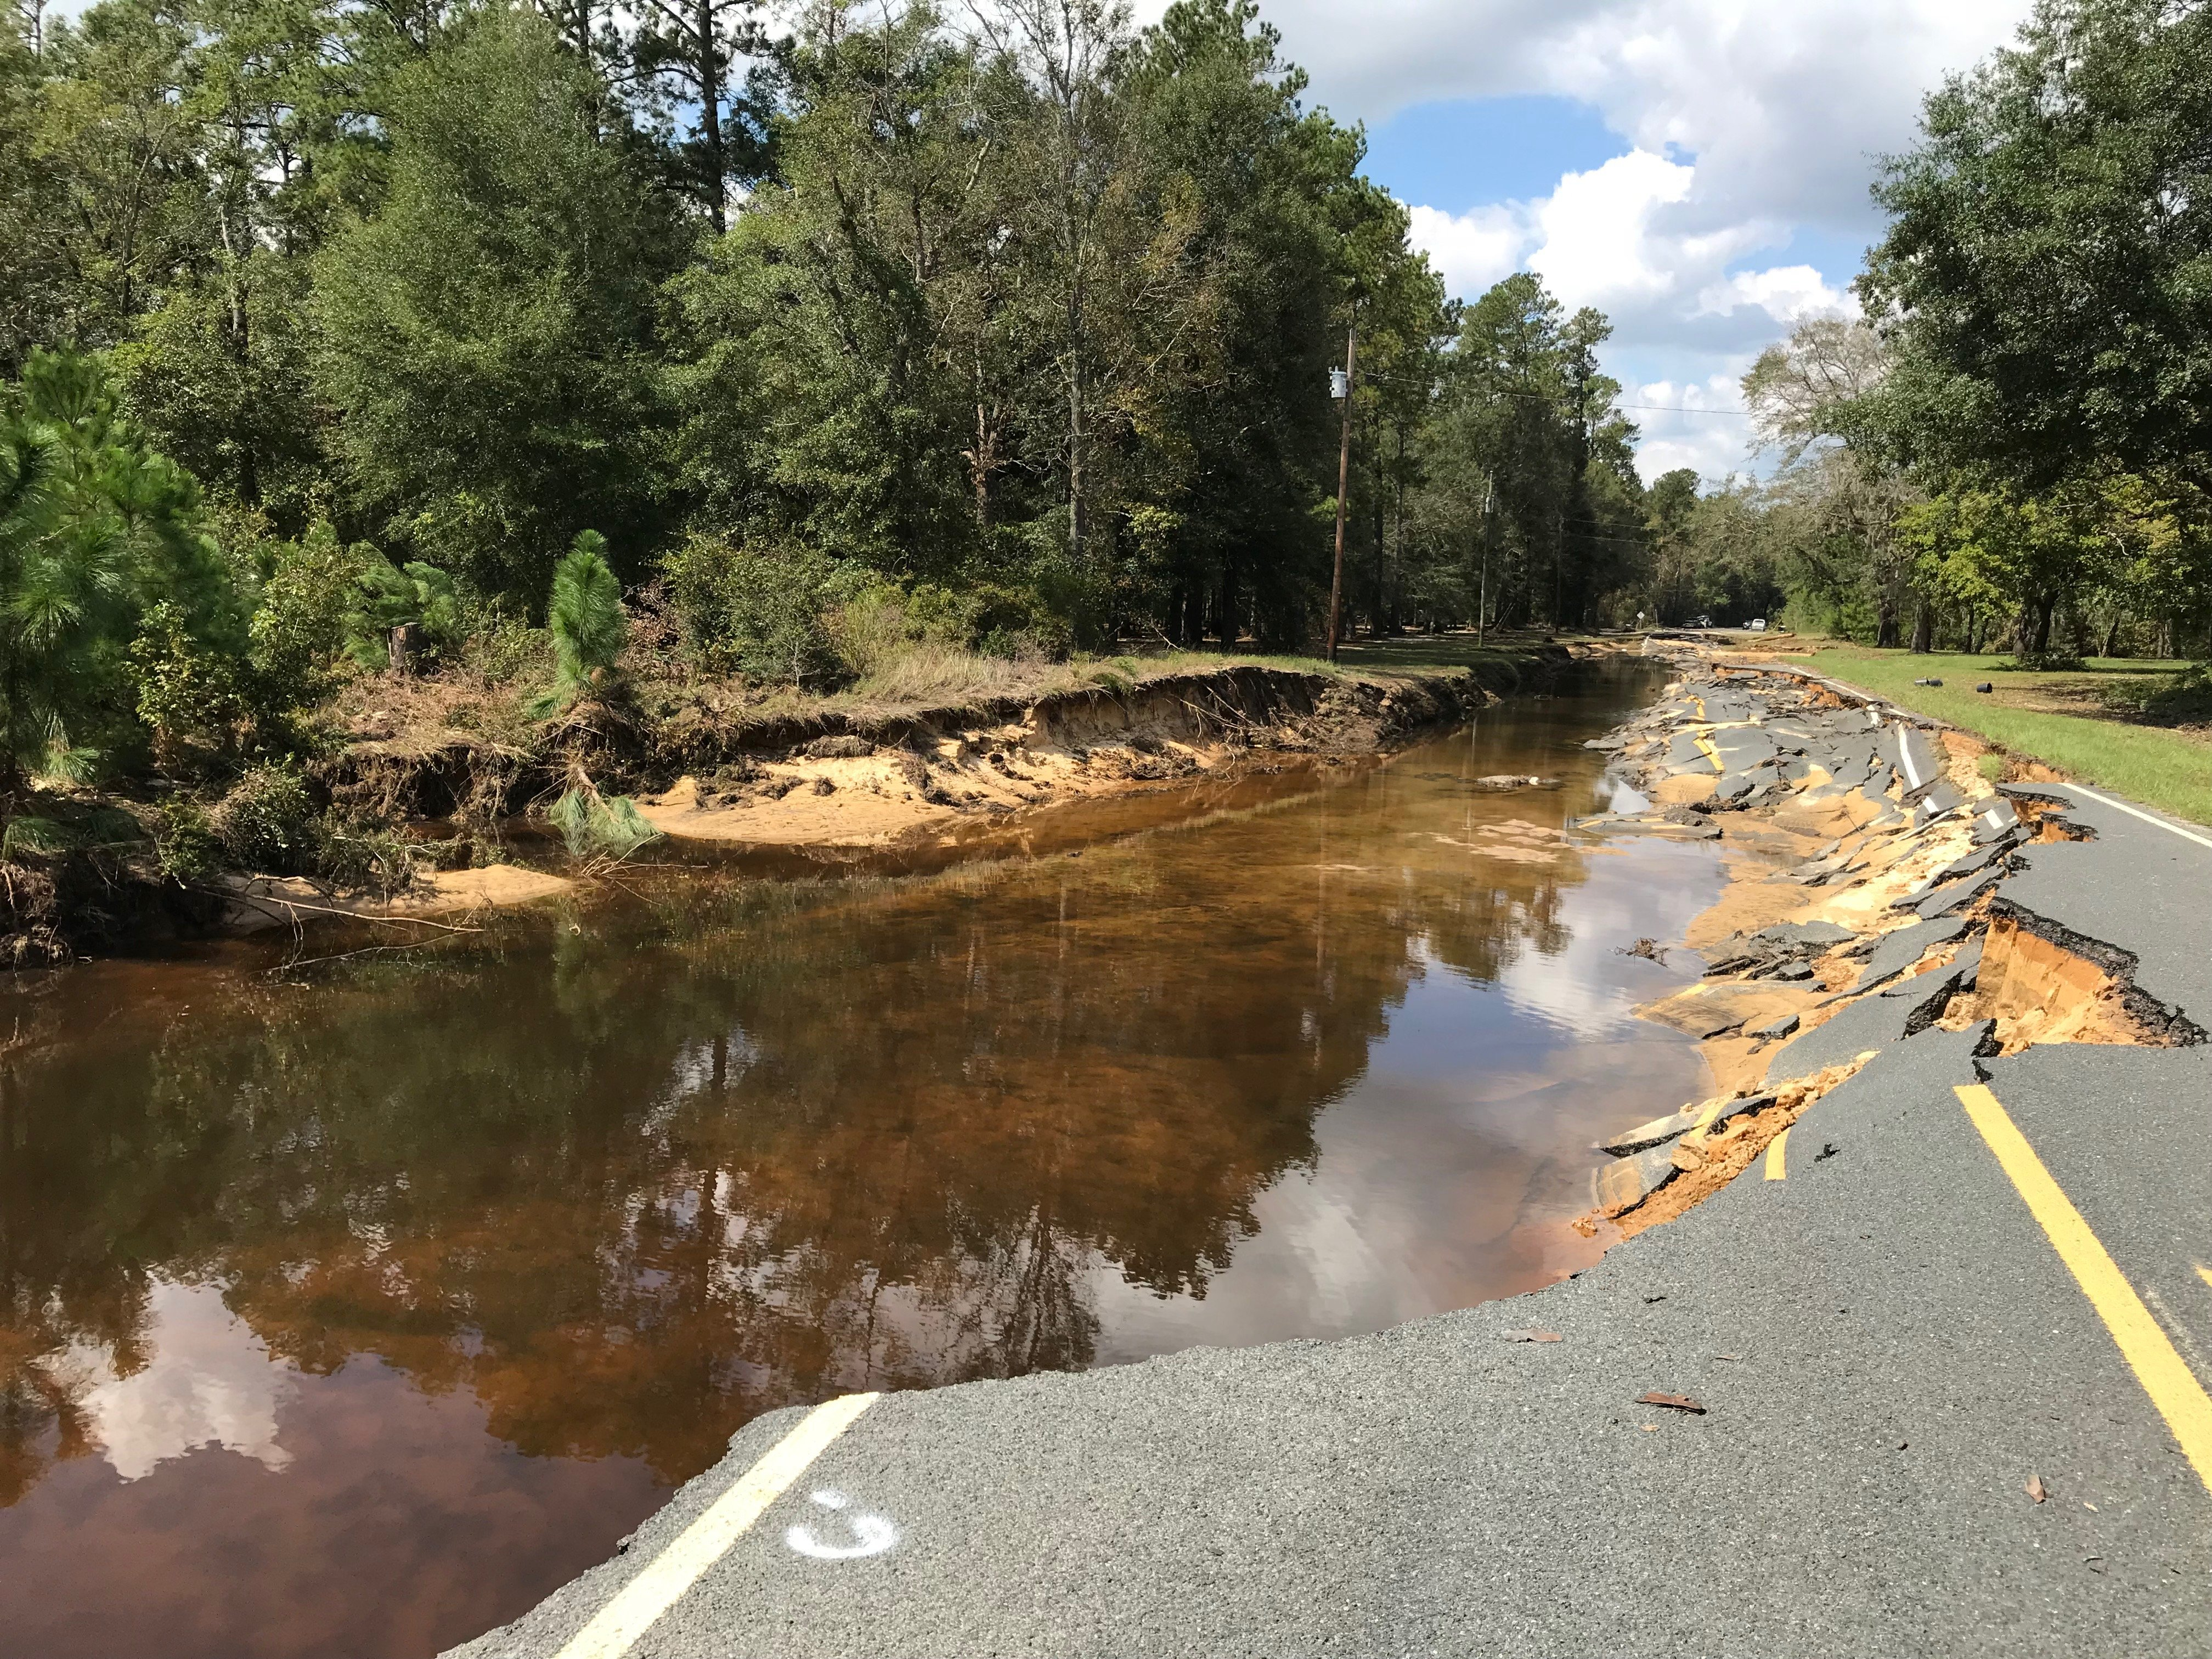 Many roads were damaged or washed away from record flooding along the Cape Fear River, such as this one near White Oak Road in Bladen County